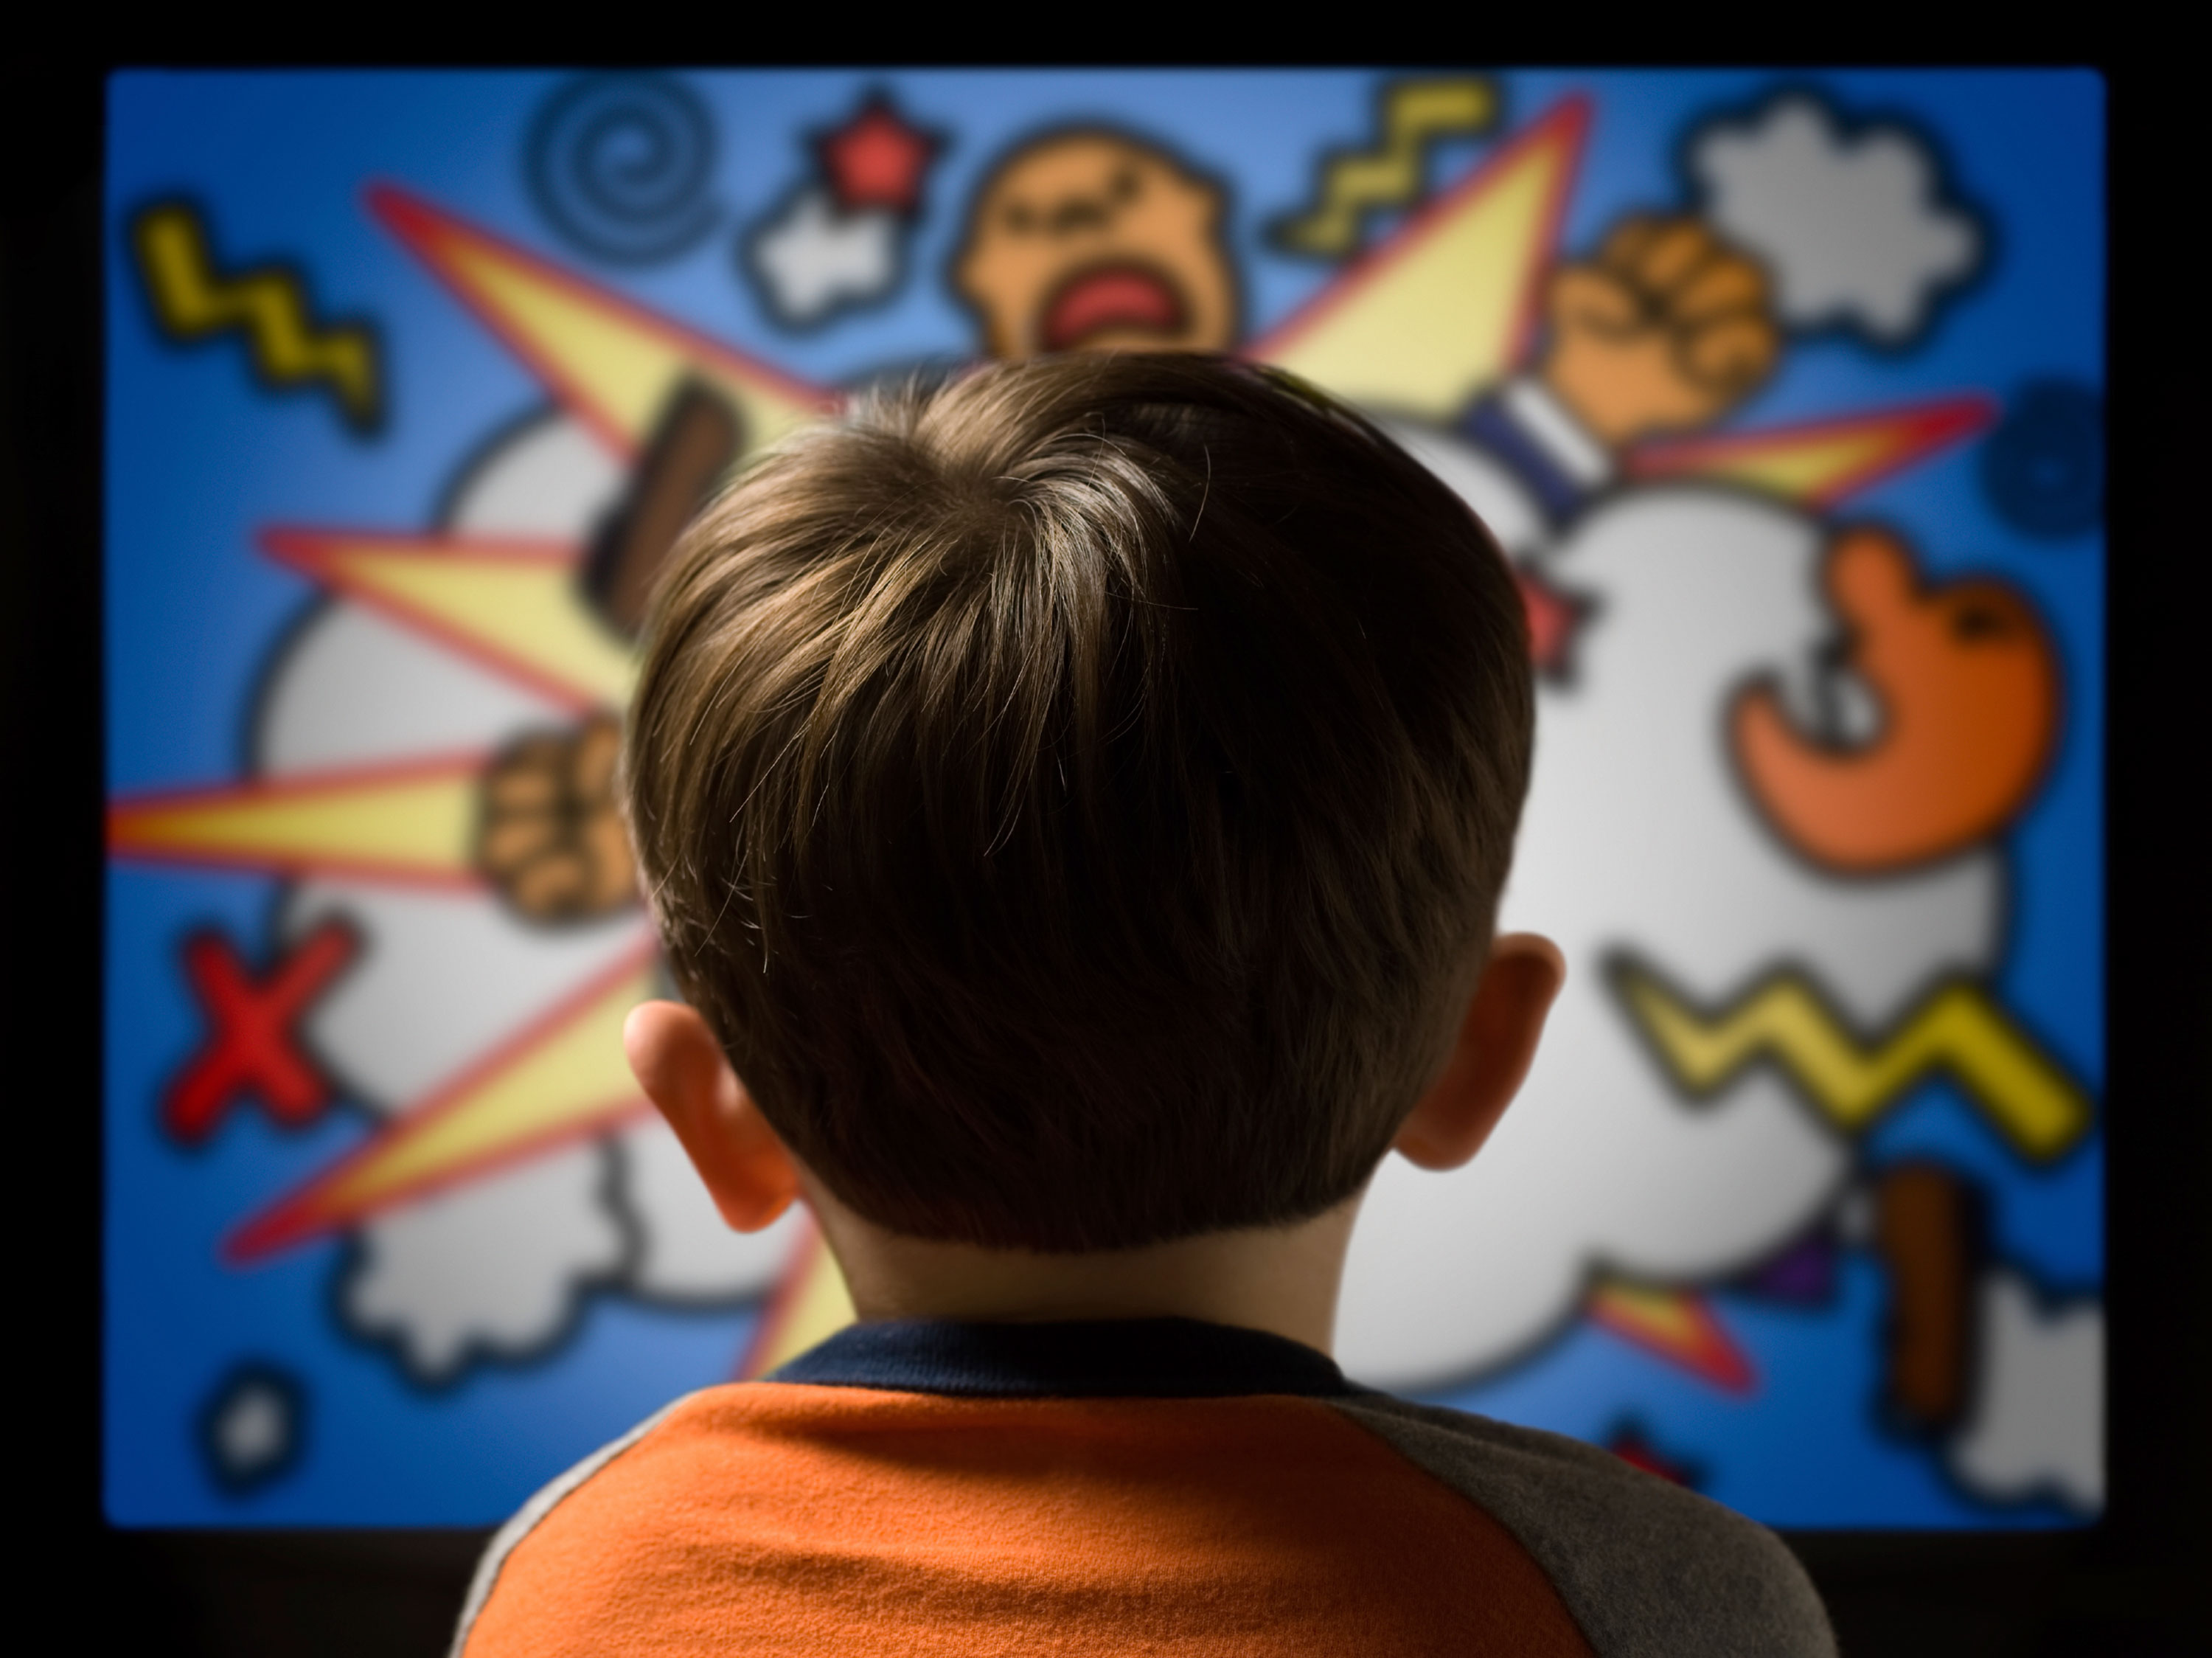 children television essays This essay investigates the literature available on children and television it establishes how television programs affect the social and academic growth of children.